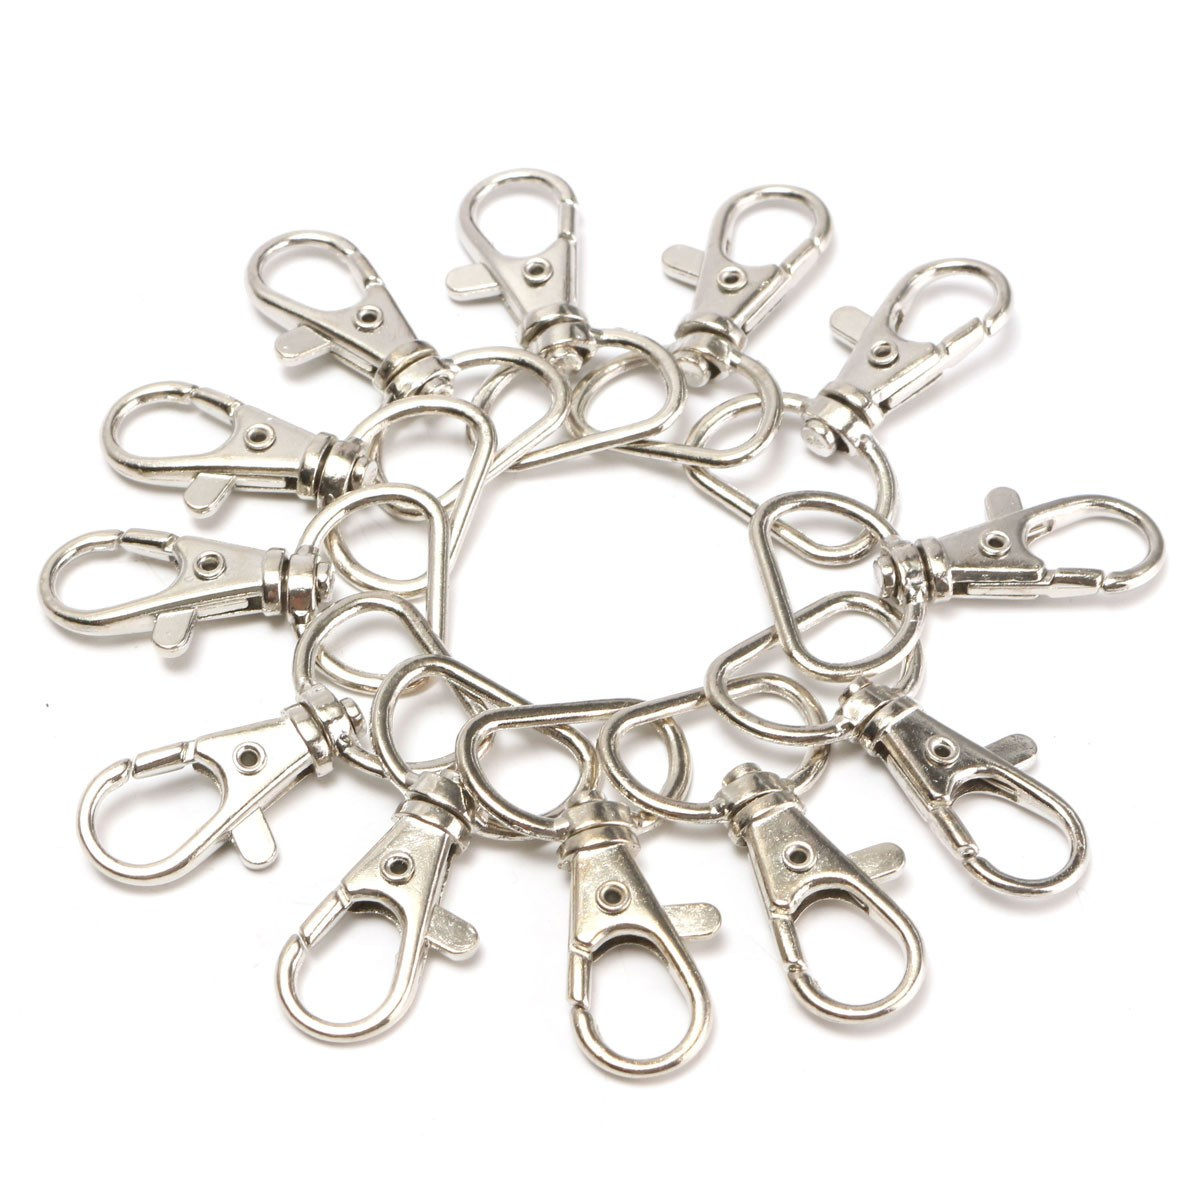 Luggage & Bags 25pcs/packs Silver Metal Lanyard Swivel Snap Diy Handbag Hook Portable Lobster Clasp Clips Bag Accessories Wholesale Buckle Hook To Make One Feel At Ease And Energetic